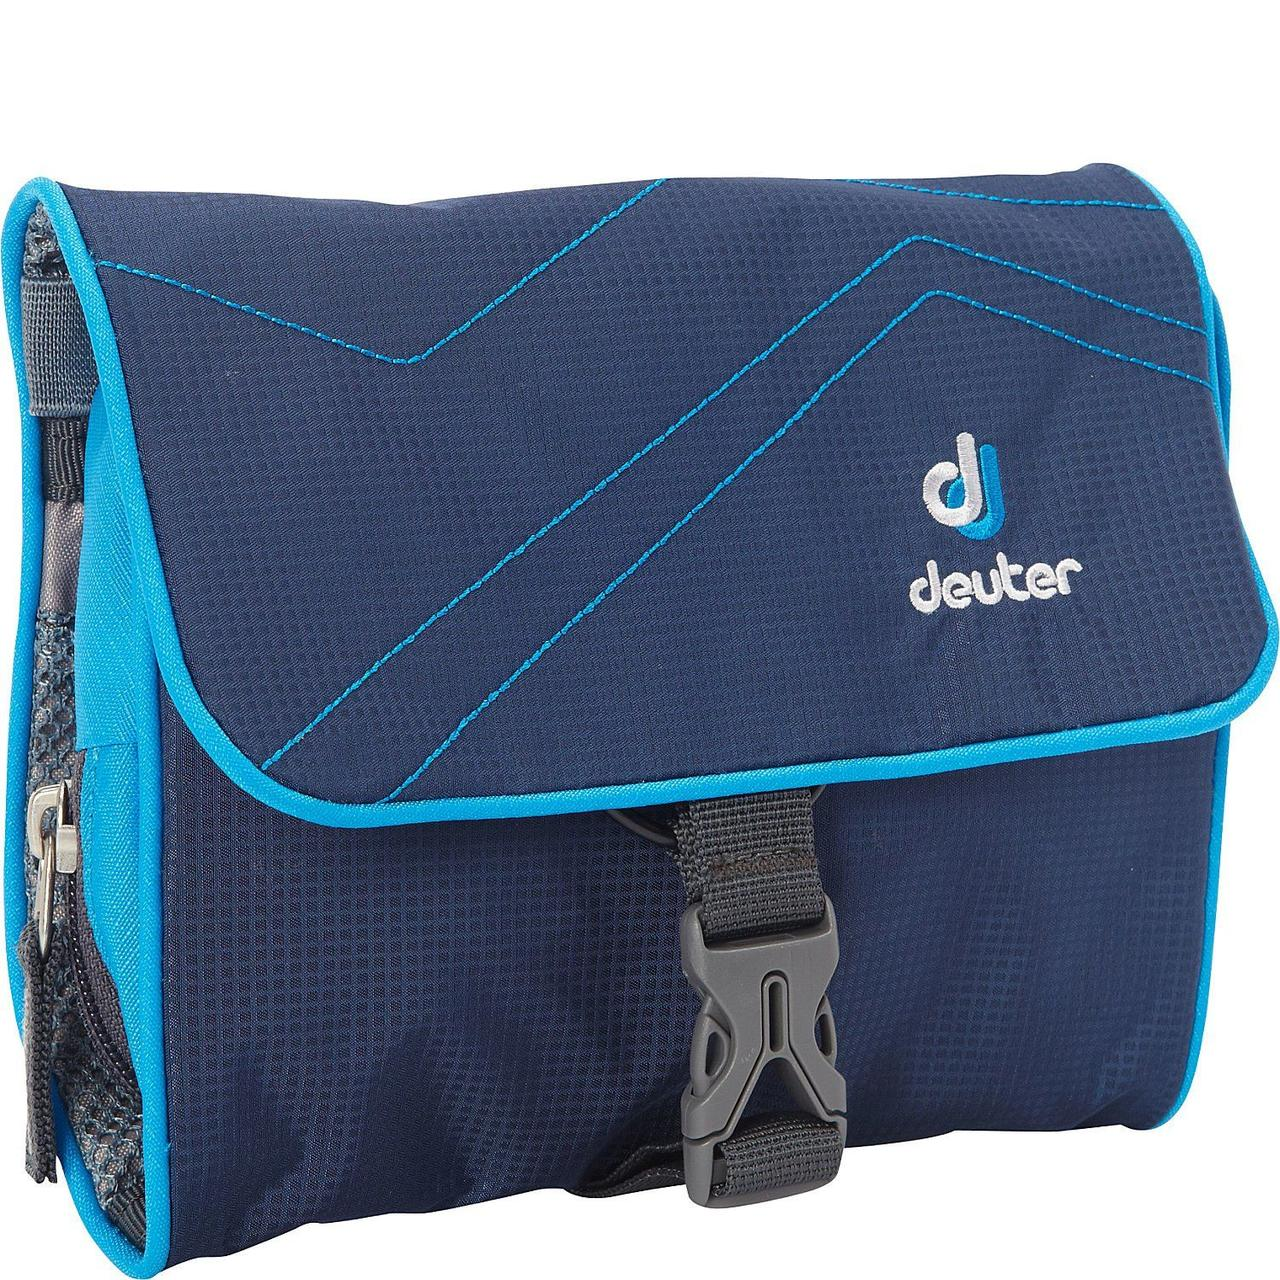 Несессер Deuter Wash Bag I midnight-turquoise (39414 3306)